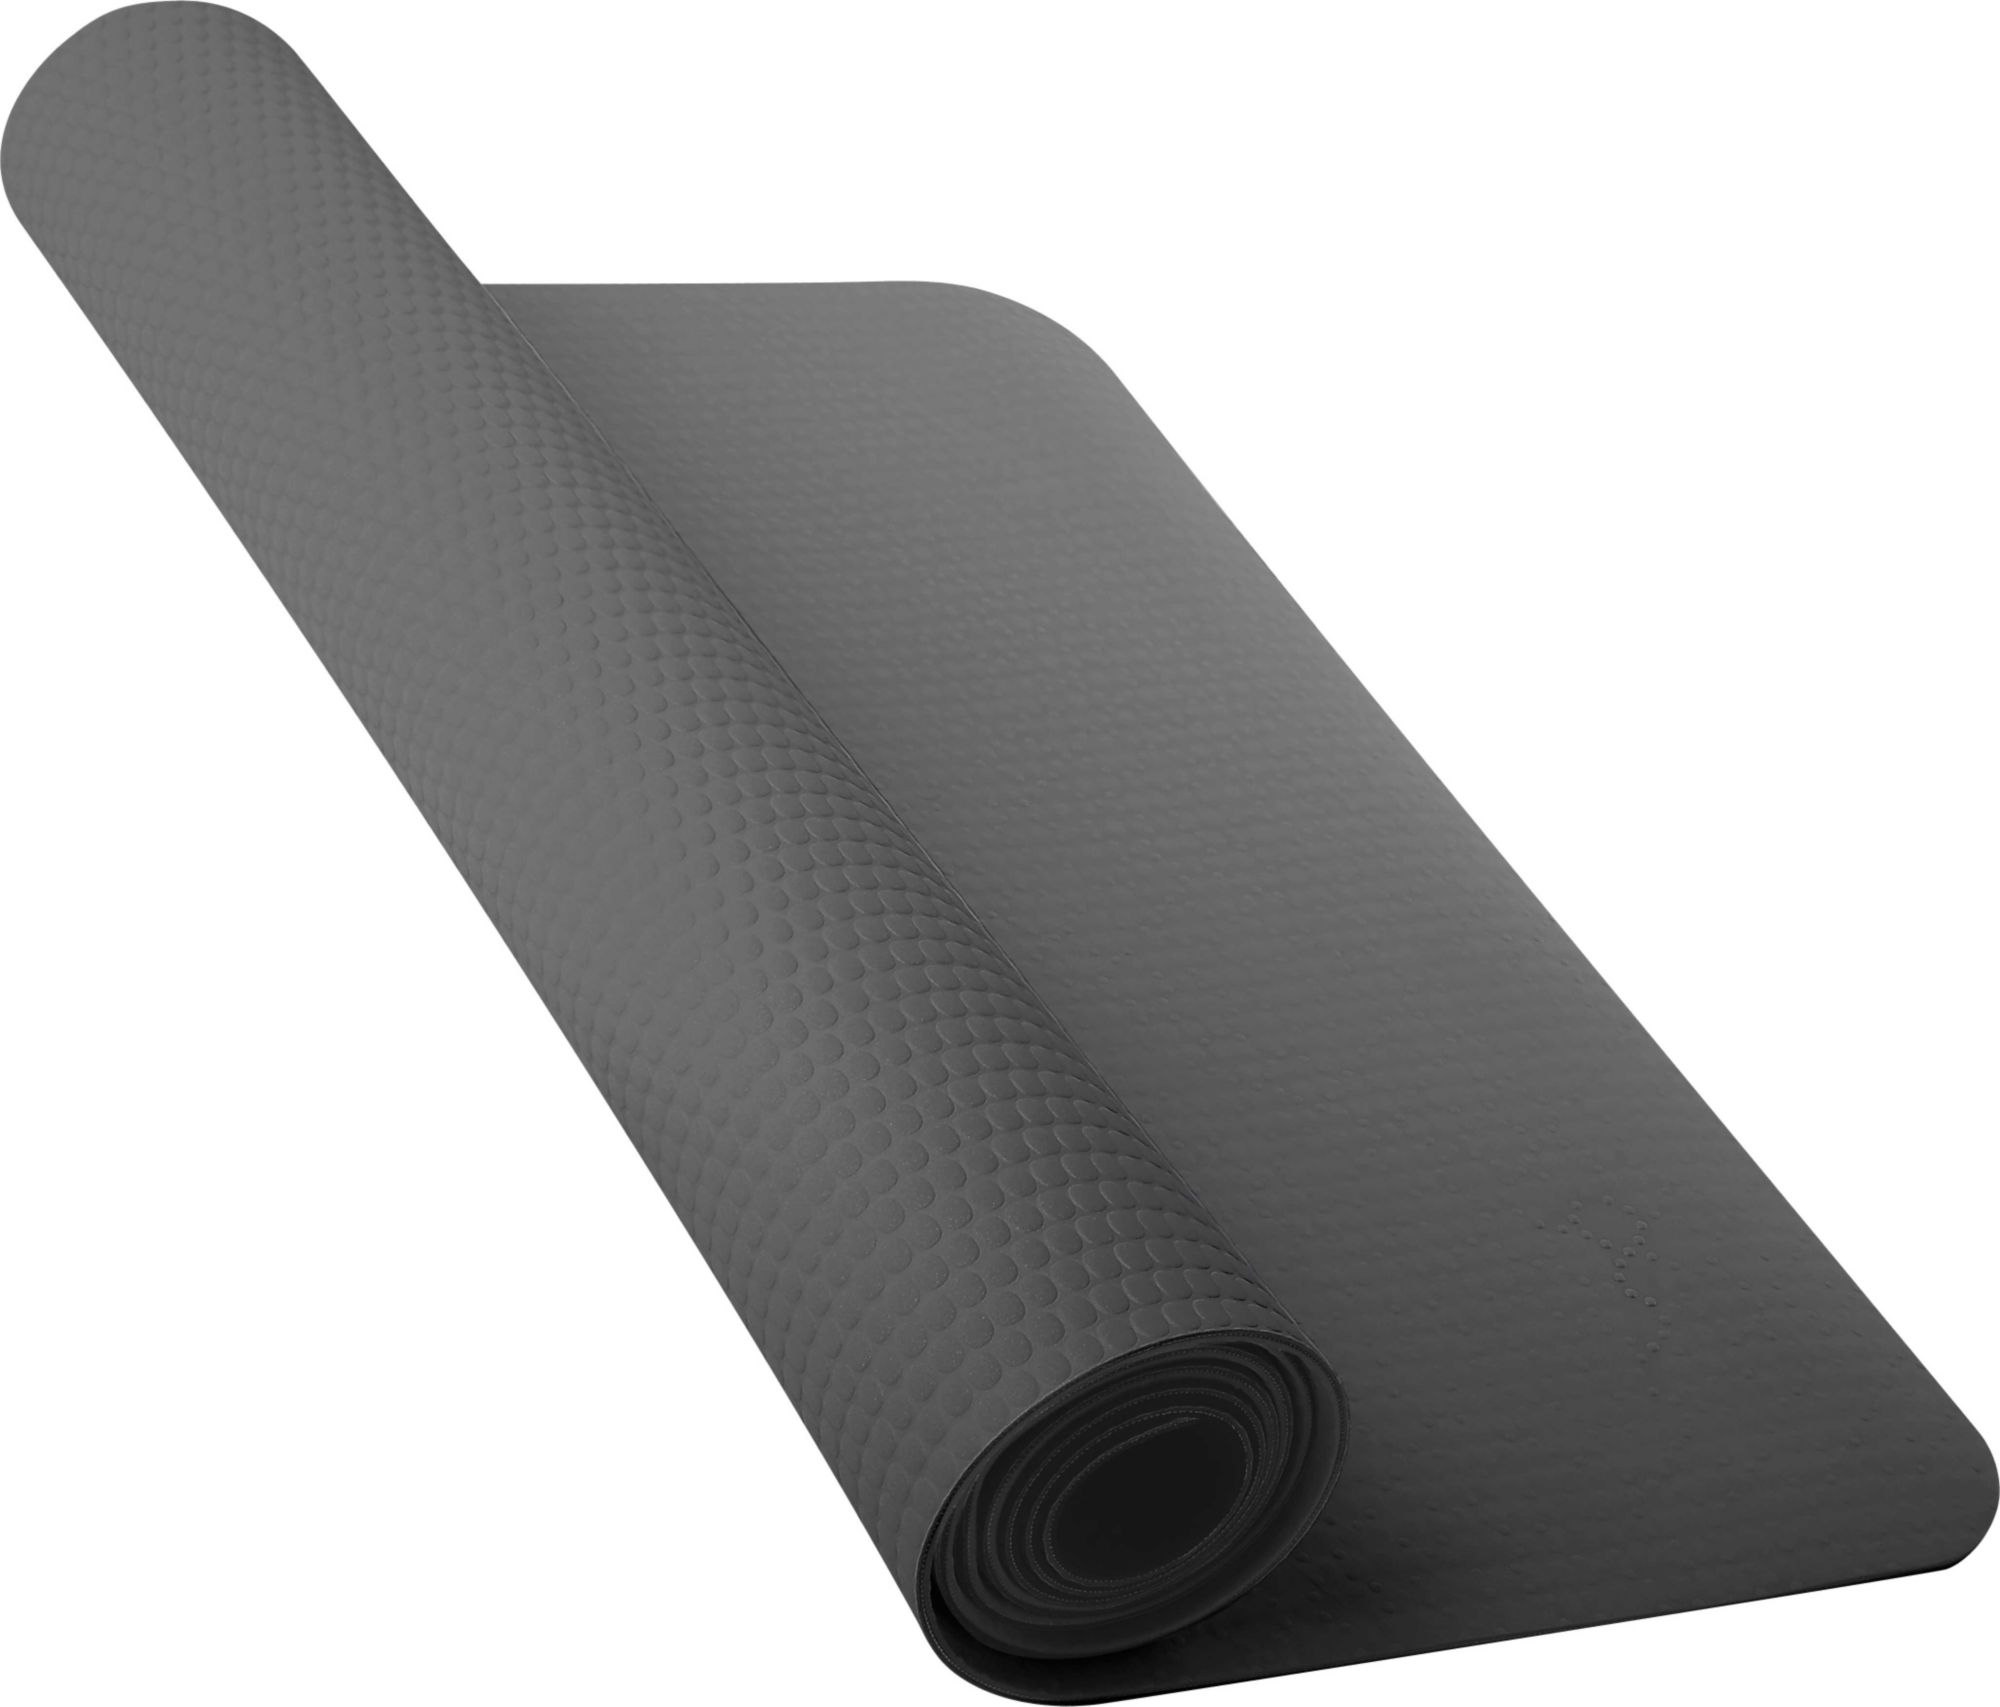 Rubber mats galway - Product Image Nike Fundamental 3mm Yoga Mat